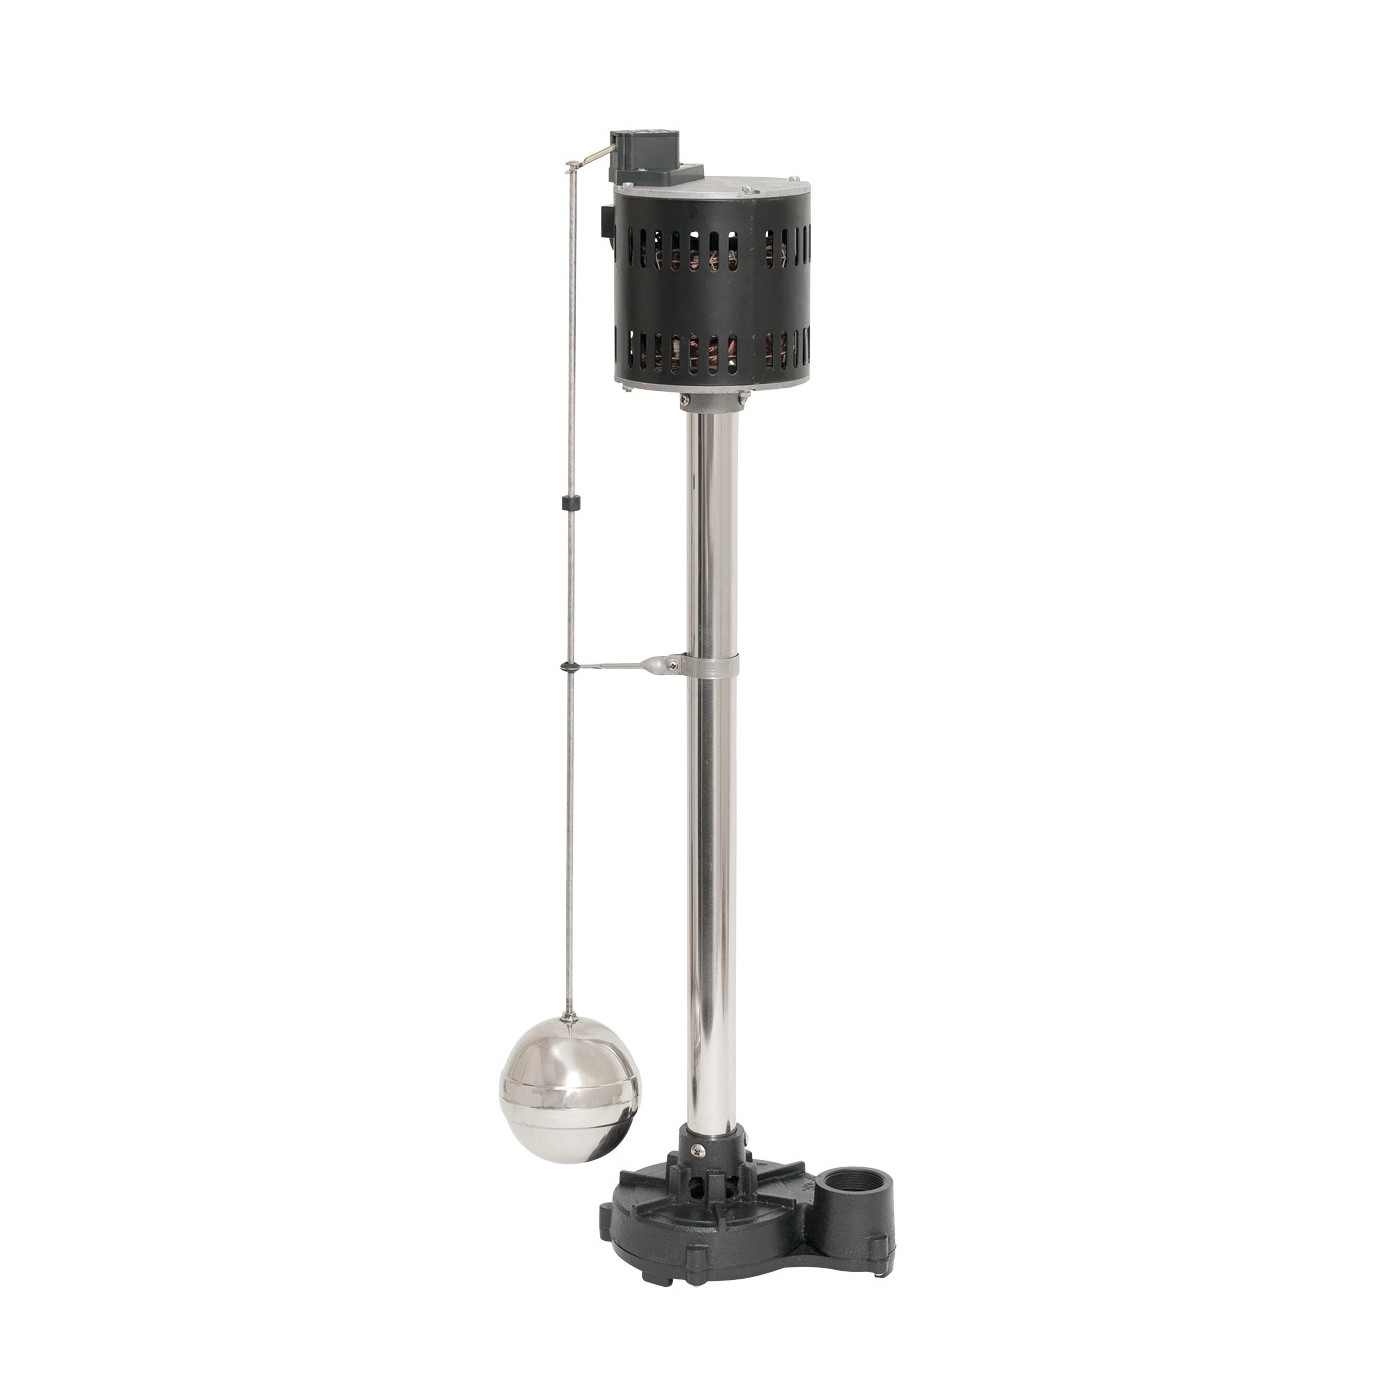 Picture of SUPERIOR PUMP 92551 Sump Pump, 1-Phase, 3.06 A, 120 V, 0.5 hp, 1-1/2 in Outlet, 60 gpm, Iron/Stainless Steel